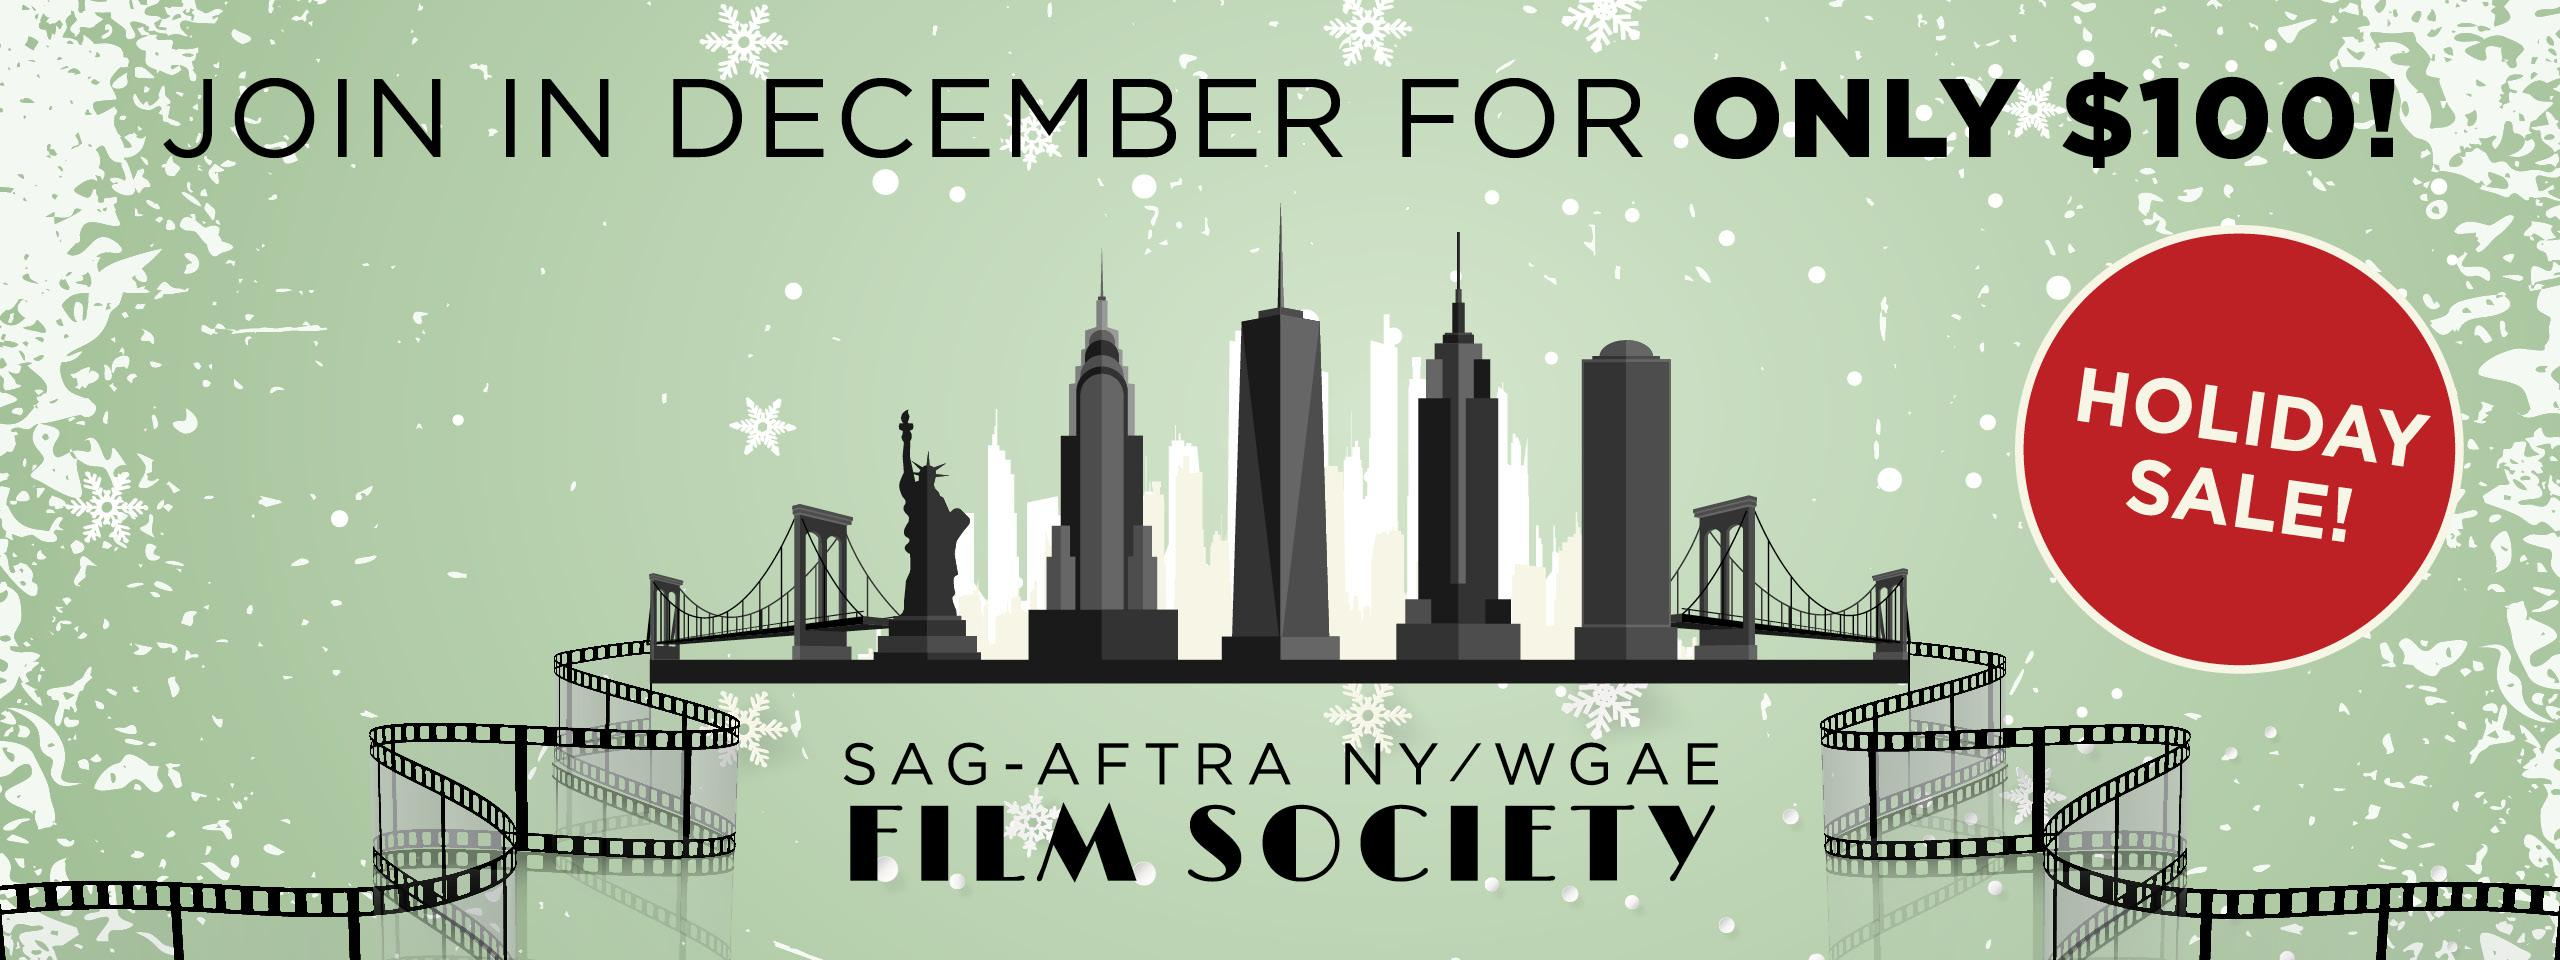 """New York Film Society logo on a green background with snowflakes and """"Join in December for only $100!"""" across the top."""